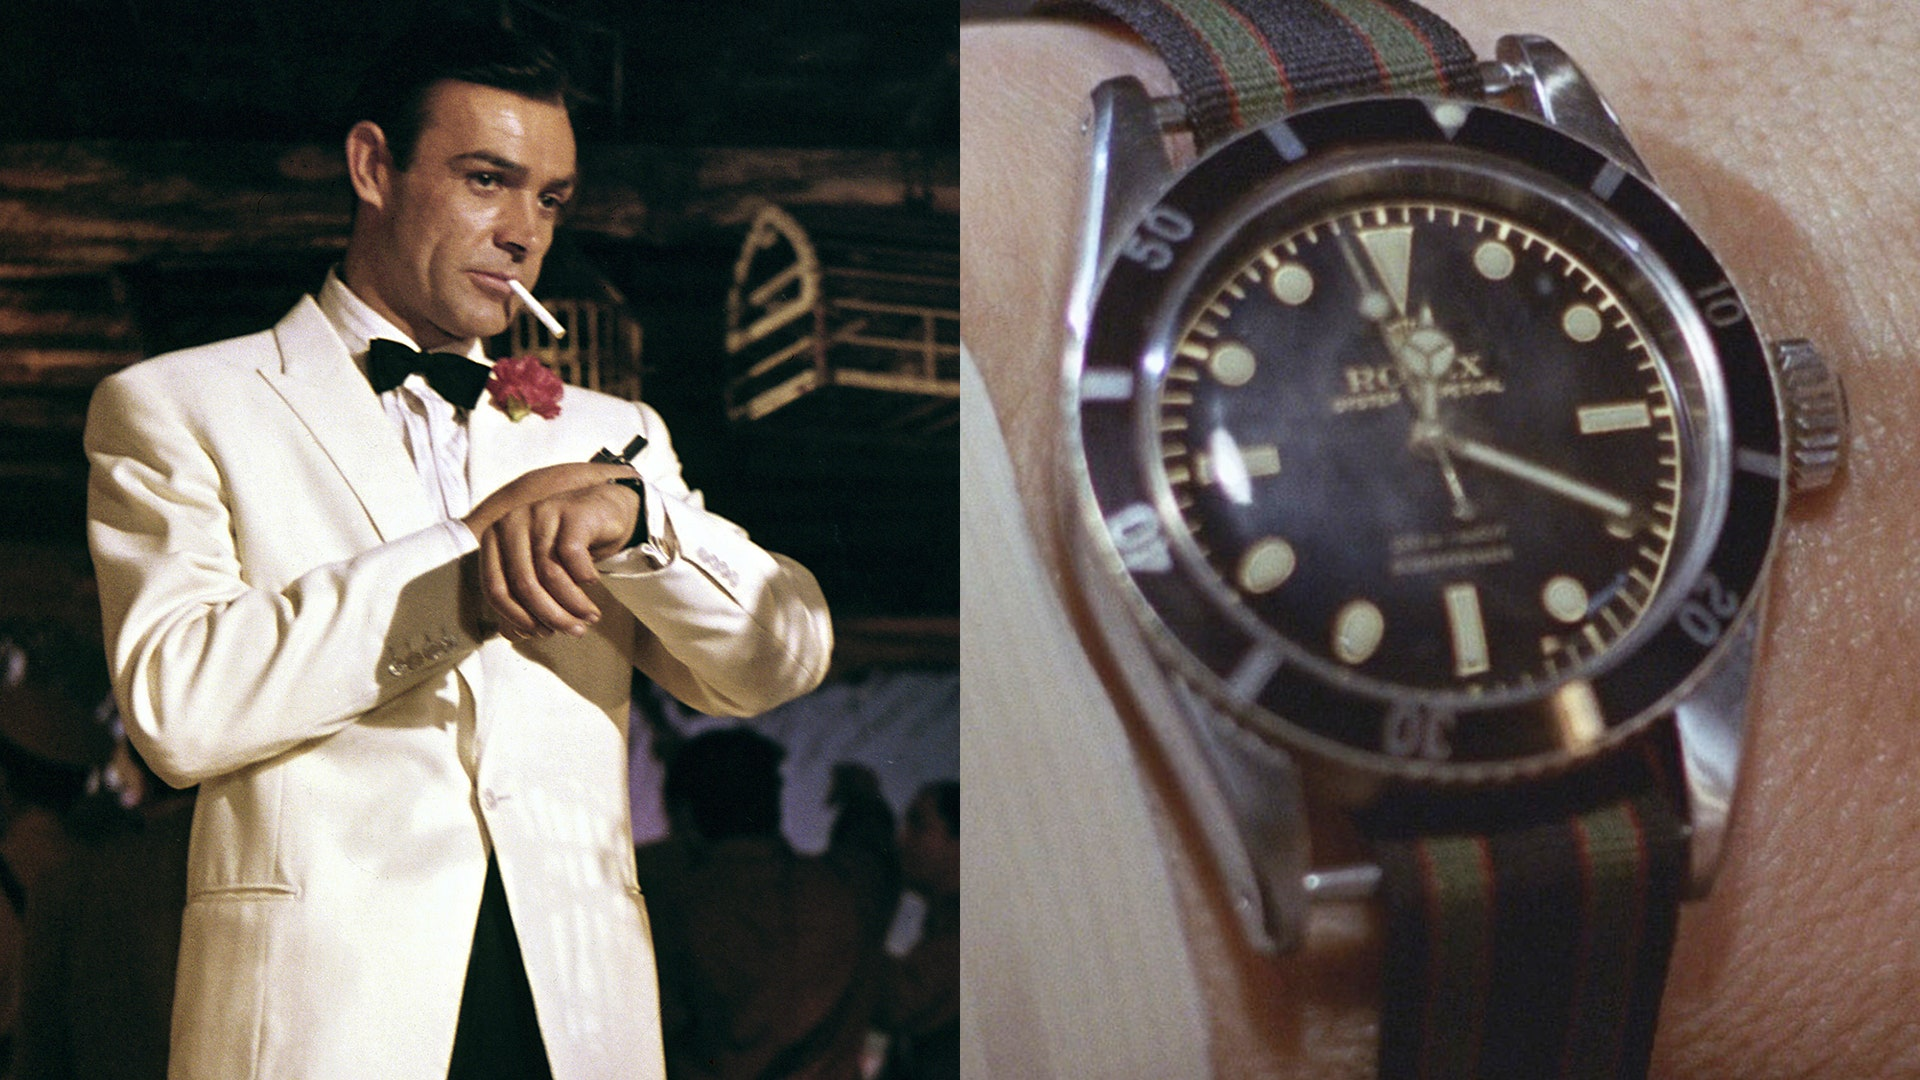 Sean Connery wearing the Submariner